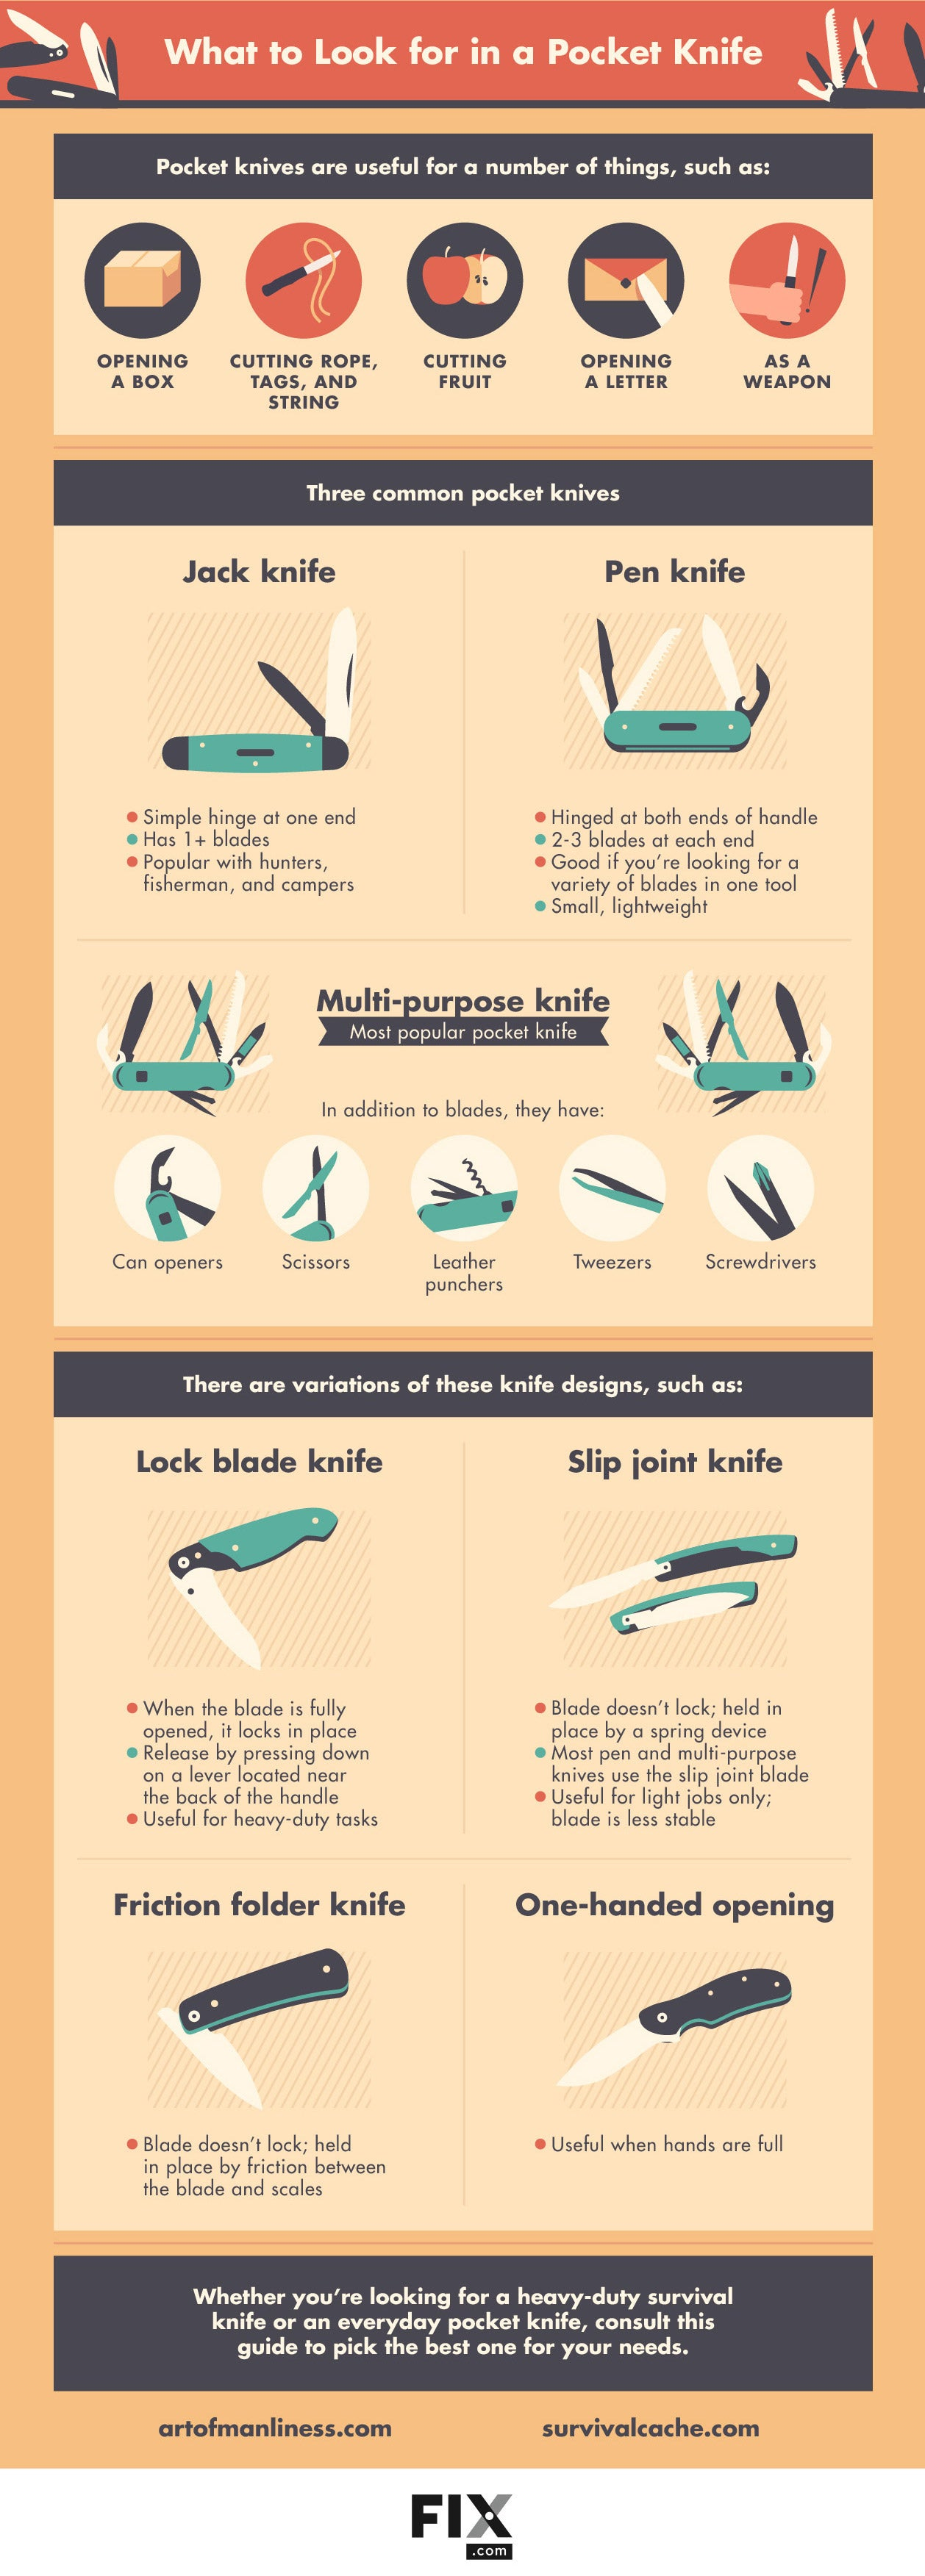 This Infographic Shows You What to Look for in a Pocket Knife